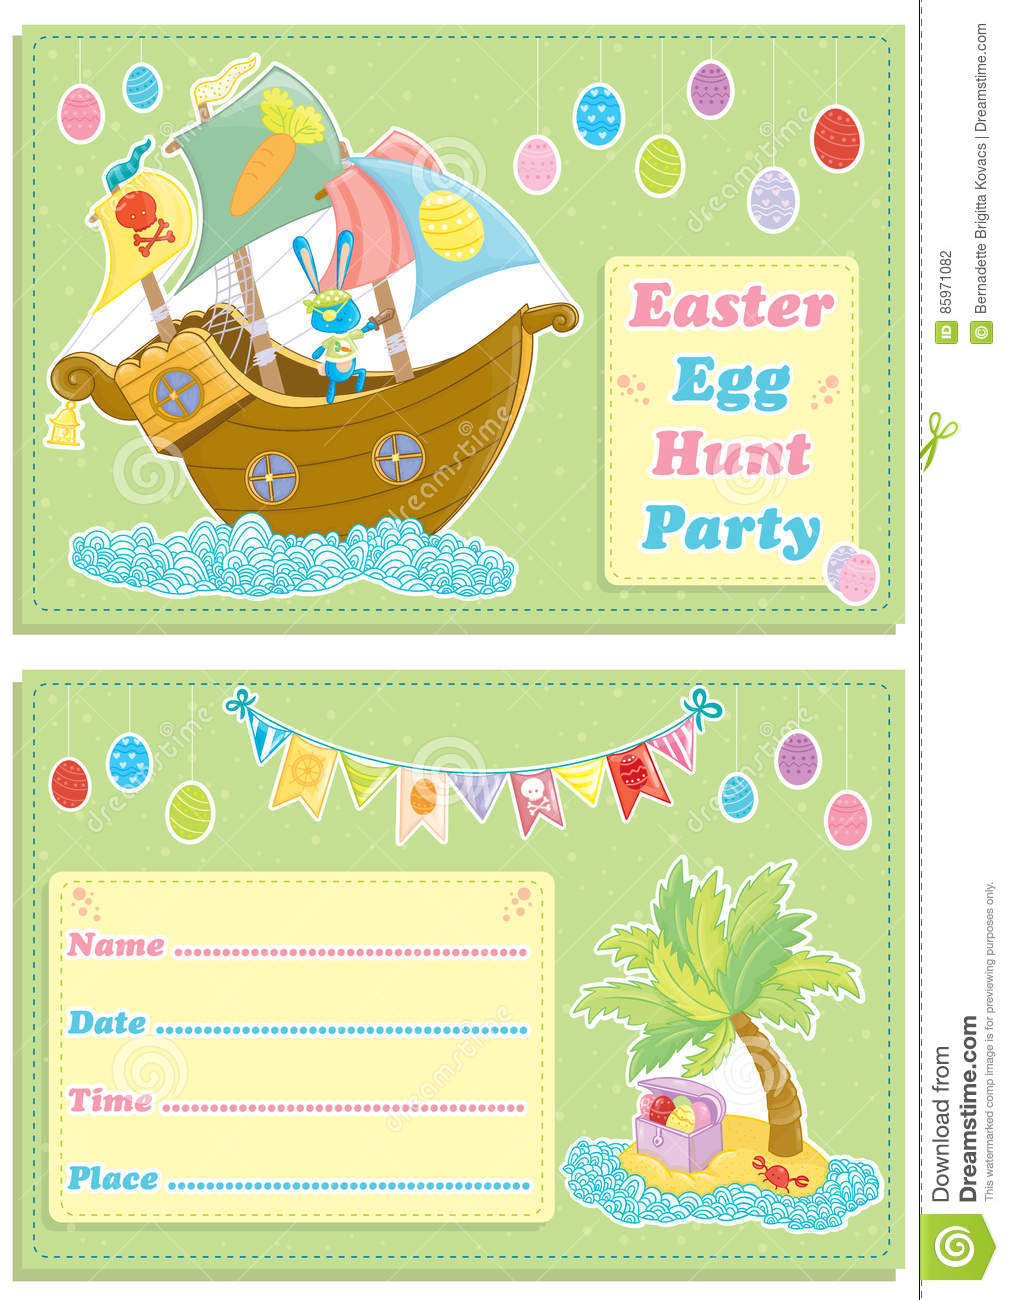 Pirate easter egg clipart banner black and white Happy Easter Children`s Egg Hunt Party Invitation Card Stock ... banner black and white